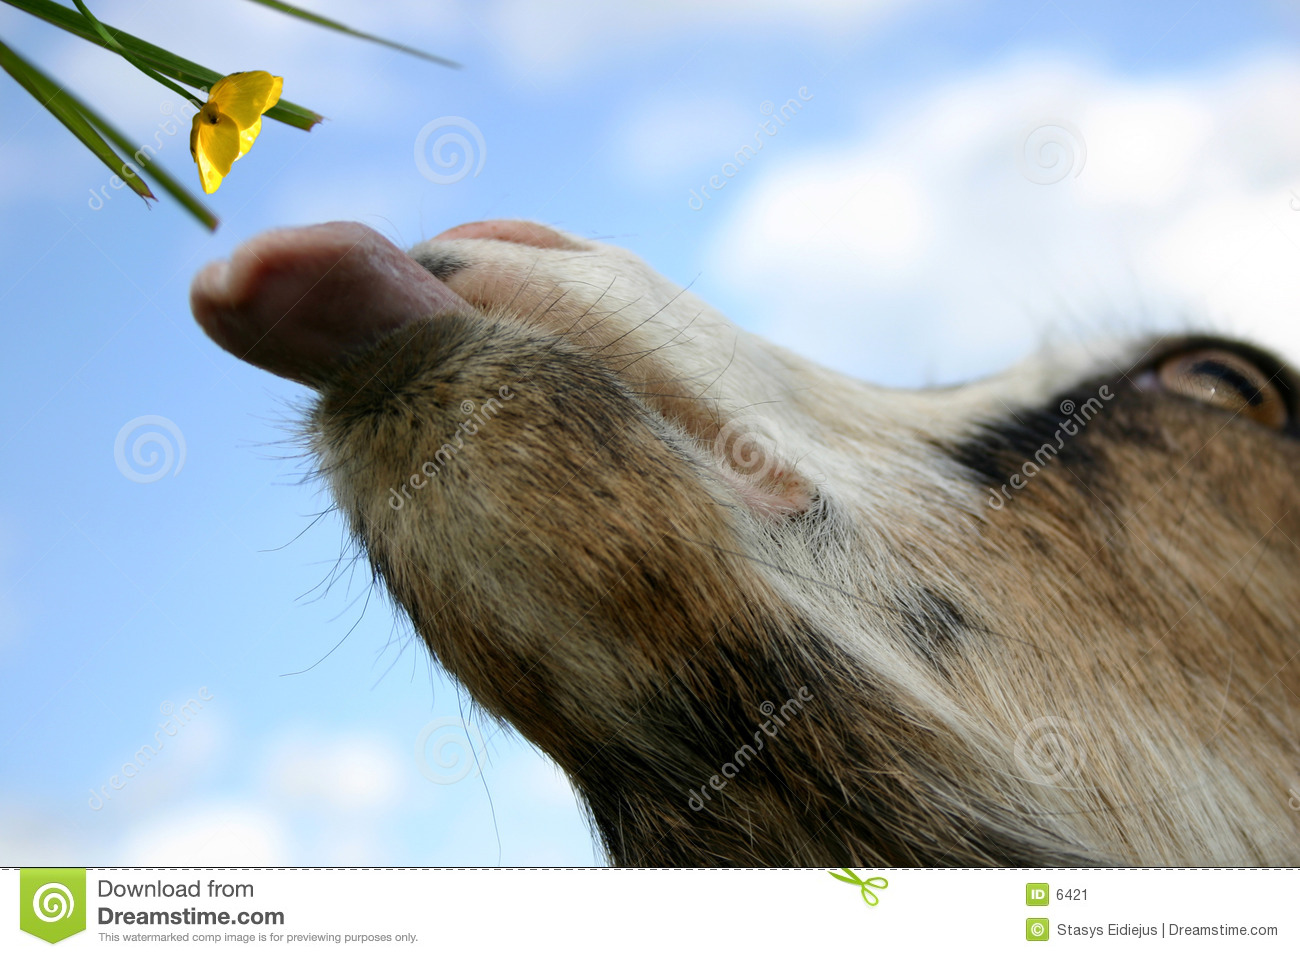 A goat: It s time to eat!